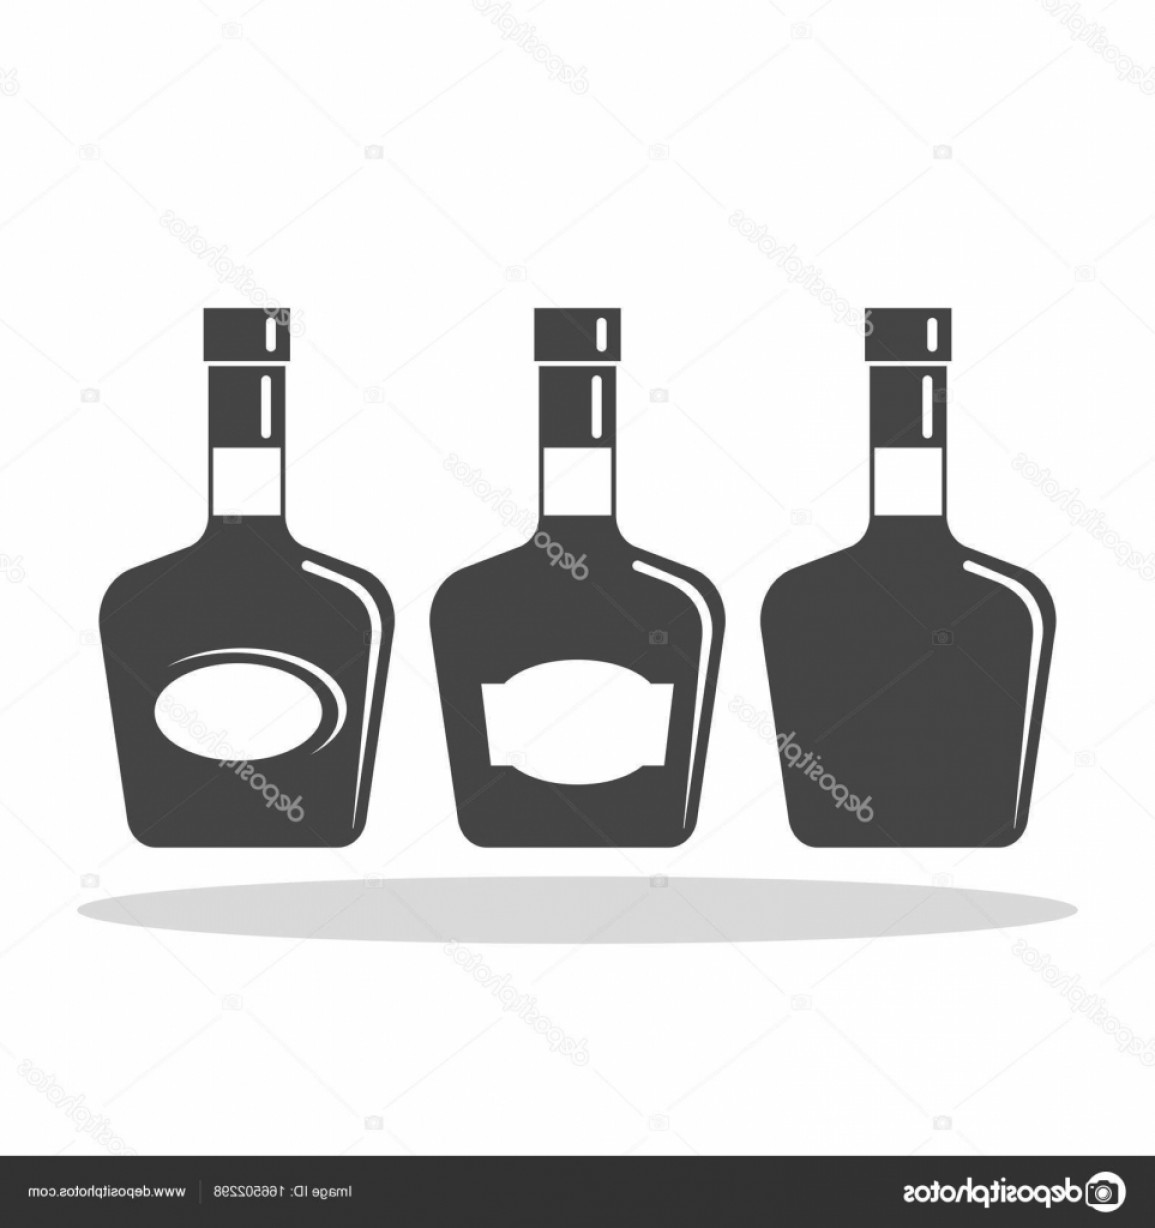 Alcohol Vector: Stock Illustration Bottle Of Alcohol Vector Flat